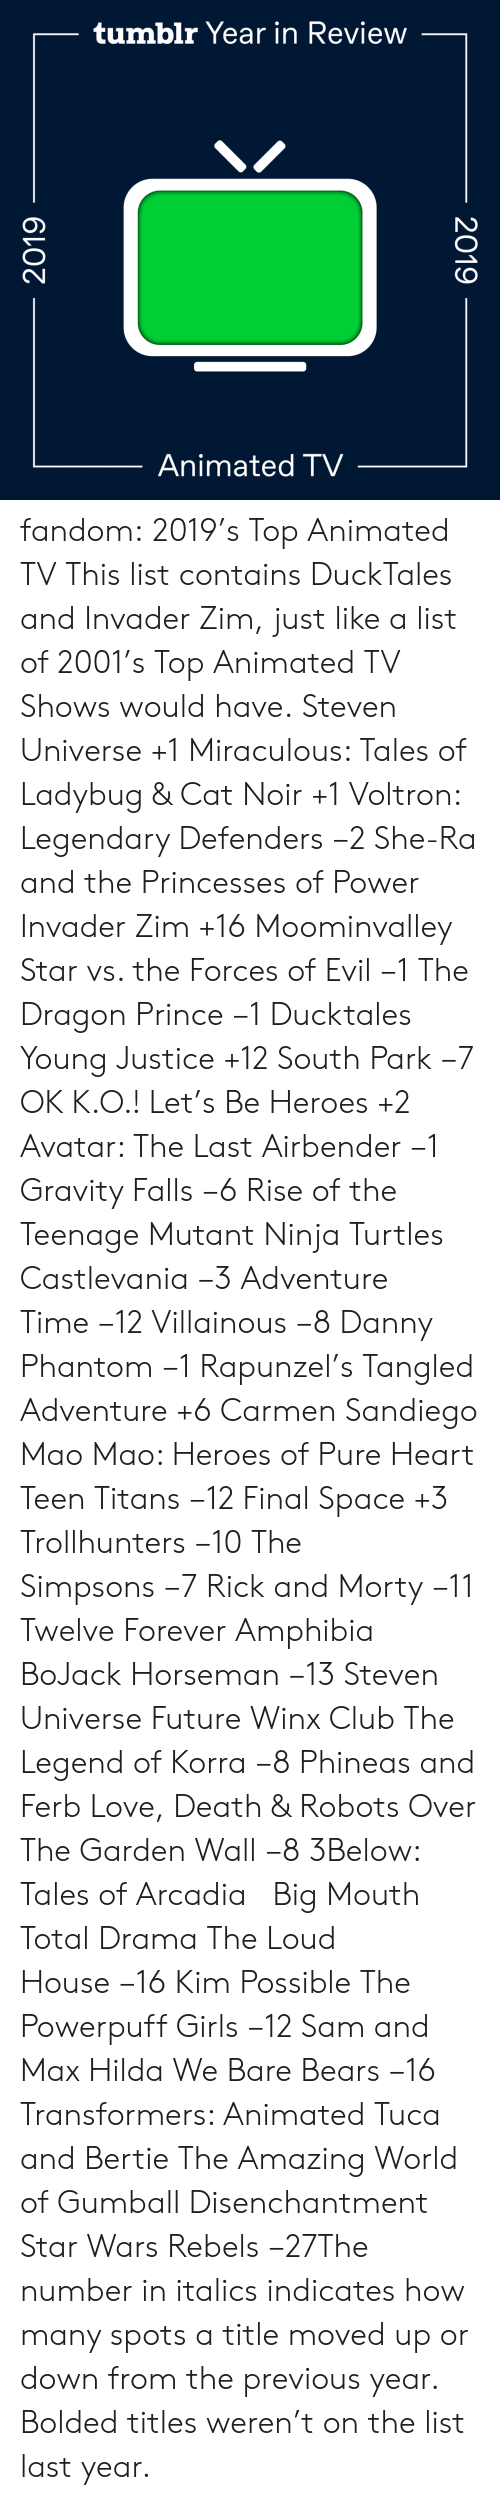 Previous: tumblr Year in Review  Animated TV  2019  2019 fandom:  2019's Top Animated TV  This list contains DuckTales and Invader Zim, just like a list of 2001's Top Animated TV Shows would have.  Steven Universe +1  Miraculous: Tales of Ladybug & Cat Noir +1  Voltron: Legendary Defenders −2  She-Ra and the Princesses of Power   Invader Zim +16  Moominvalley  Star vs. the Forces of Evil −1  The Dragon Prince −1  Ducktales  Young Justice +12  South Park −7  OK K.O.! Let's Be Heroes +2  Avatar: The Last Airbender −1  Gravity Falls −6  Rise of the Teenage Mutant Ninja Turtles  Castlevania −3  Adventure Time −12  Villainous −8  Danny Phantom −1  Rapunzel's Tangled Adventure +6  Carmen Sandiego  Mao Mao: Heroes of Pure Heart  Teen Titans −12  Final Space +3  Trollhunters −10  The Simpsons −7  Rick and Morty −11  Twelve Forever  Amphibia  BoJack Horseman −13  Steven Universe Future  Winx Club  The Legend of Korra −8  Phineas and Ferb  Love, Death & Robots  Over The Garden Wall −8  3Below: Tales of Arcadia    Big Mouth  Total Drama  The Loud House −16  Kim Possible  The Powerpuff Girls −12  Sam and Max  Hilda  We Bare Bears −16  Transformers: Animated  Tuca and Bertie  The Amazing World of Gumball  Disenchantment Star Wars Rebels −27The number in italics indicates how many spots a title moved up or down from the previous year. Bolded titles weren't on the list last year.